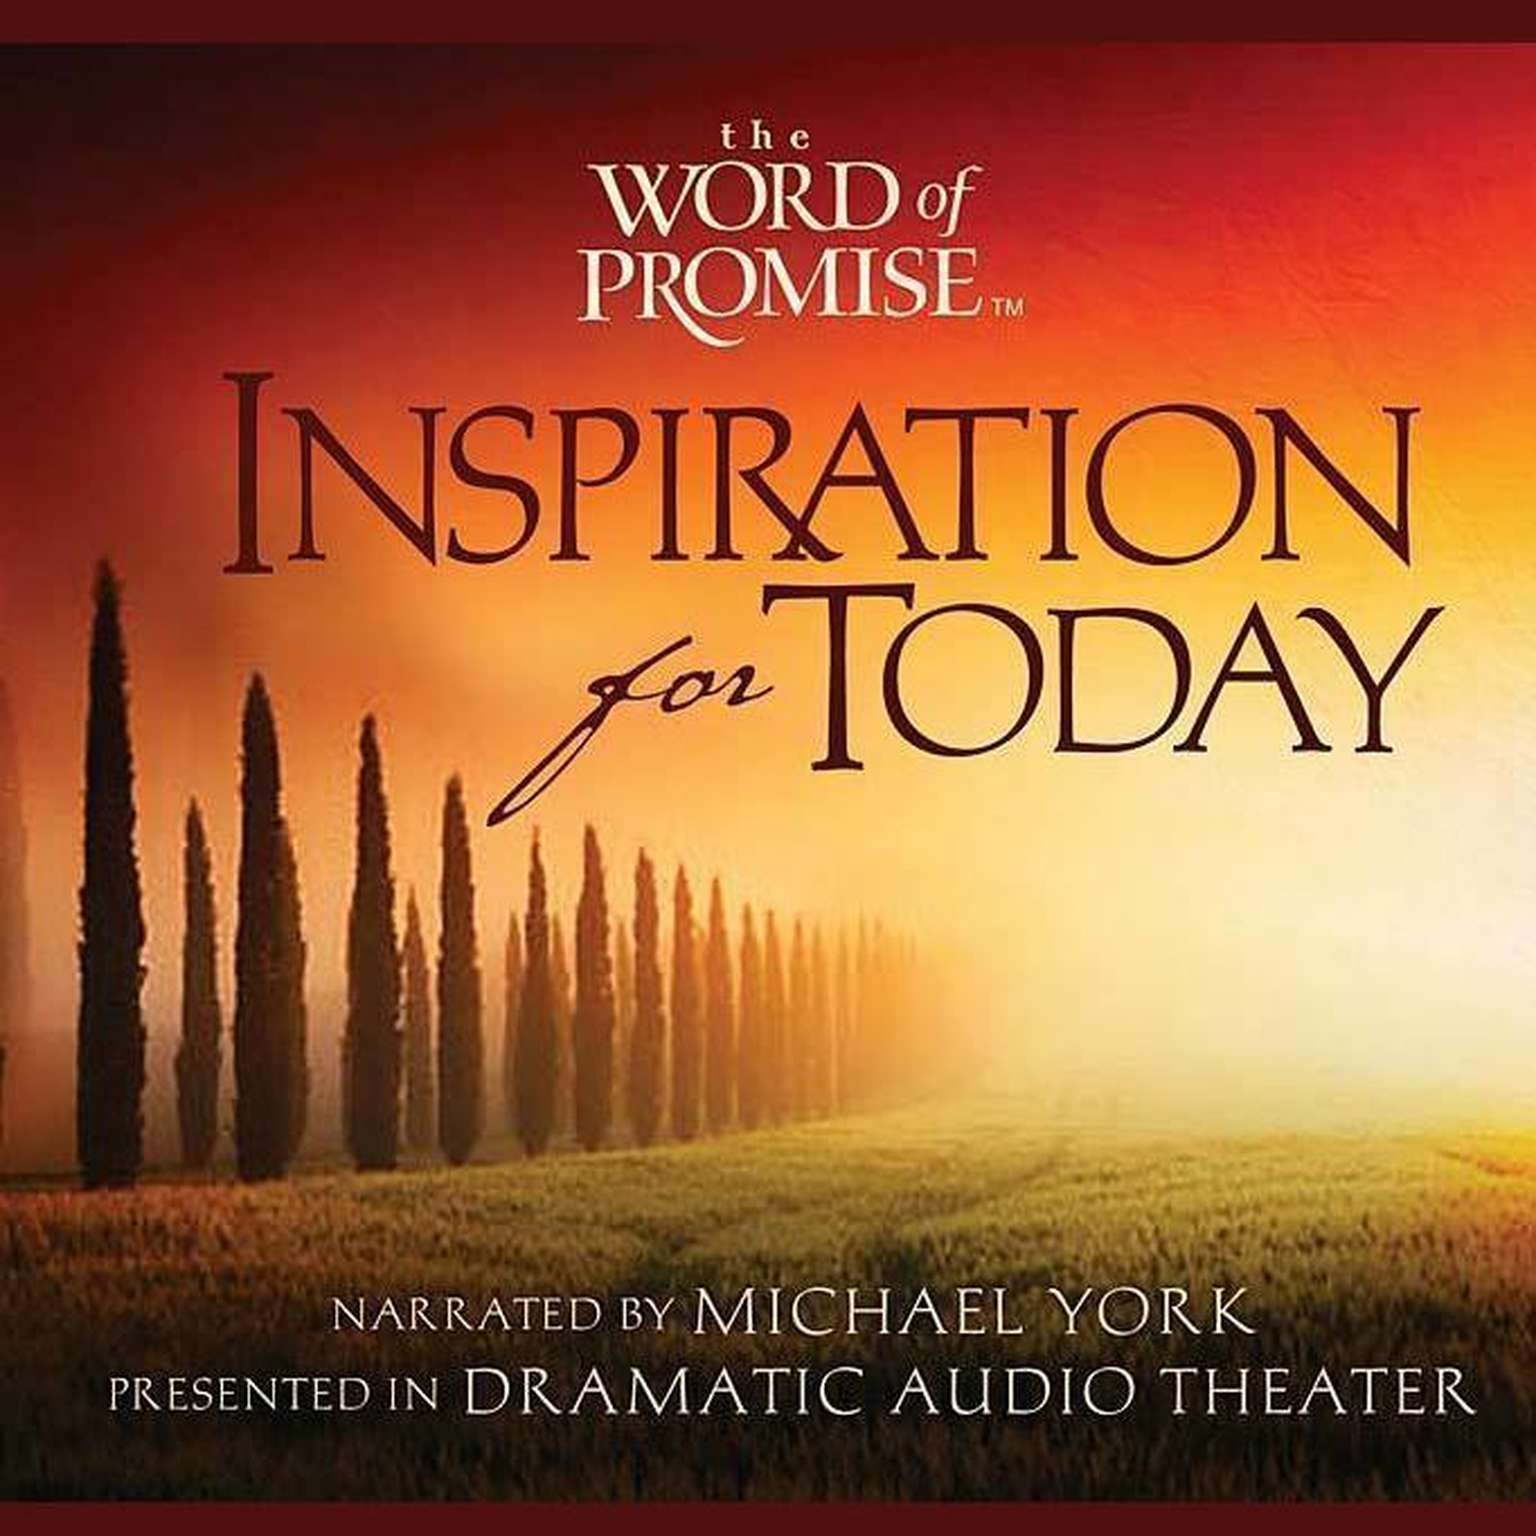 Printable The Word of Promise: Inspiration For Today Audiobook Cover Art